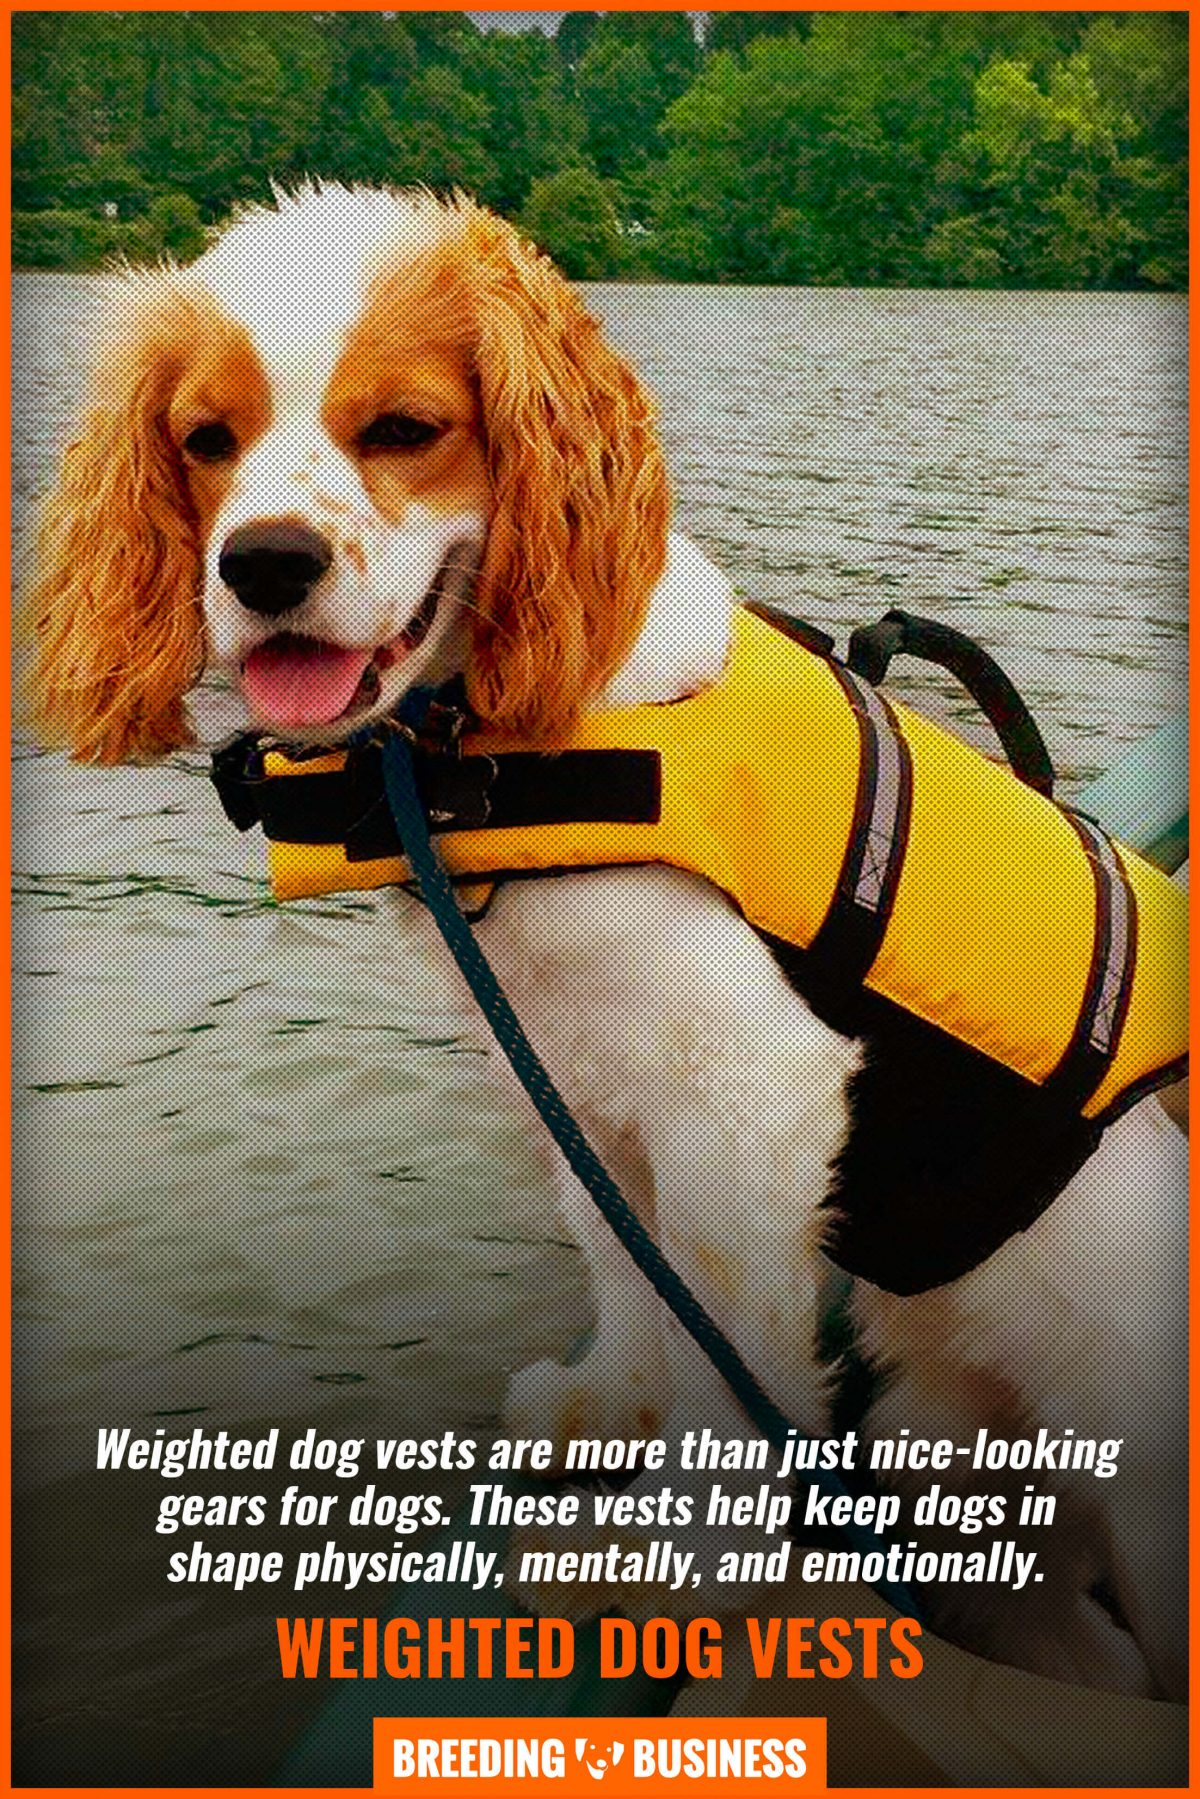 weighted dog vests